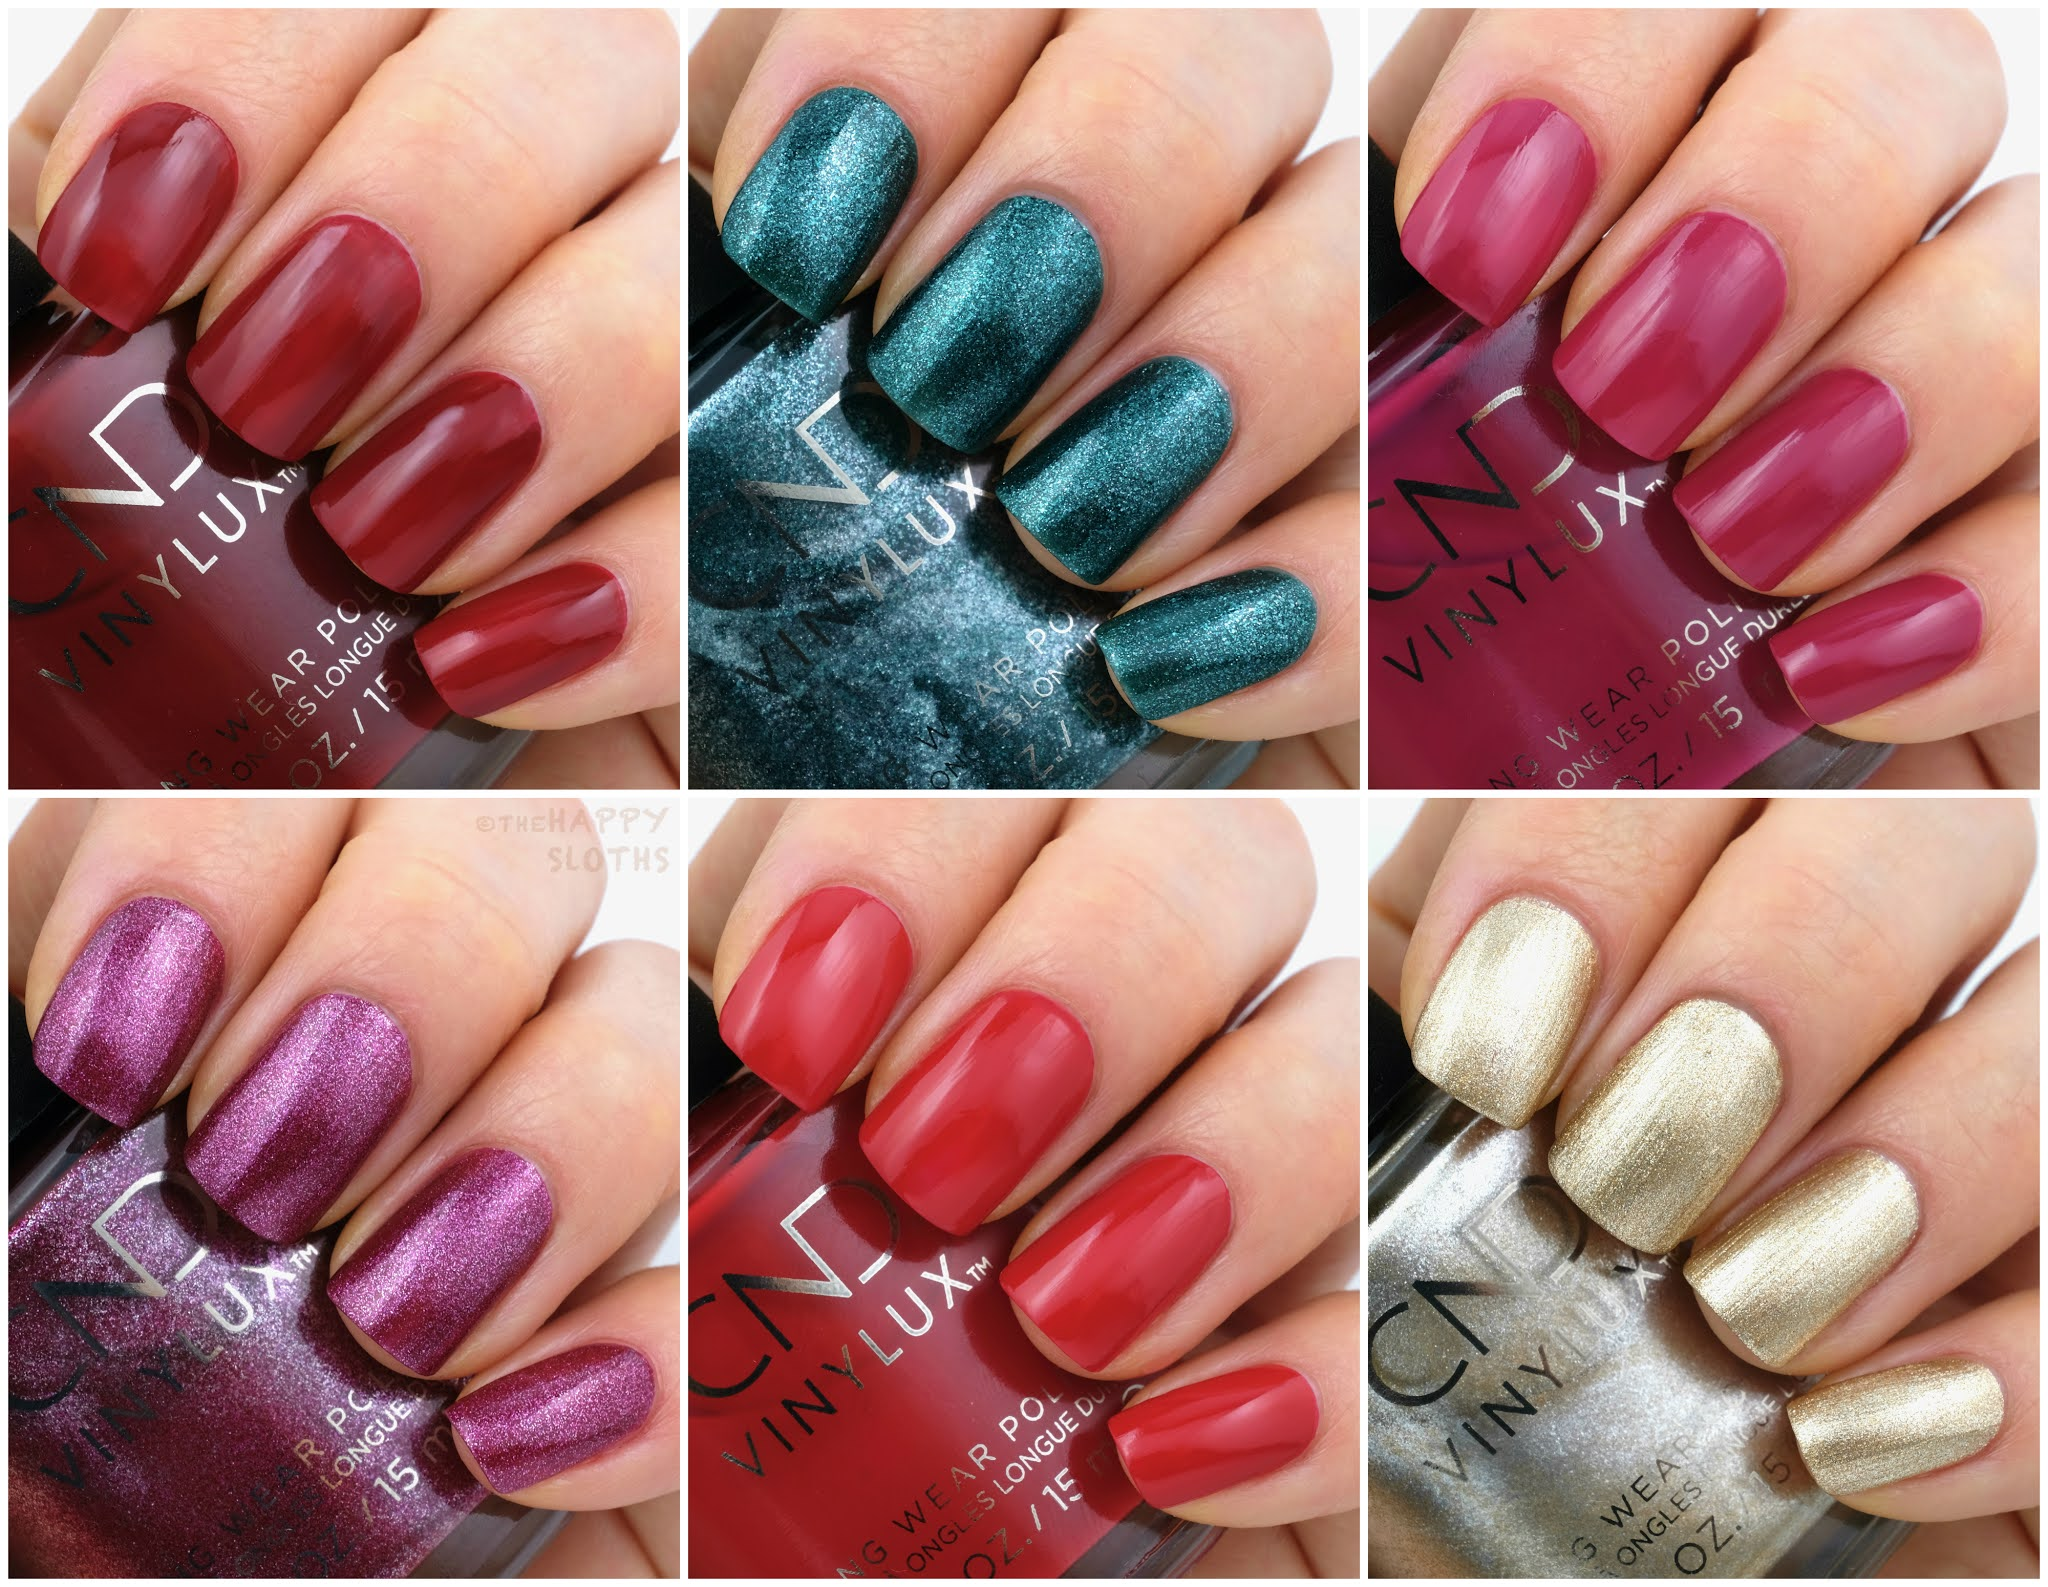 CND | Holiday 2020 Cocktail Couture Collection: Review and Swatches